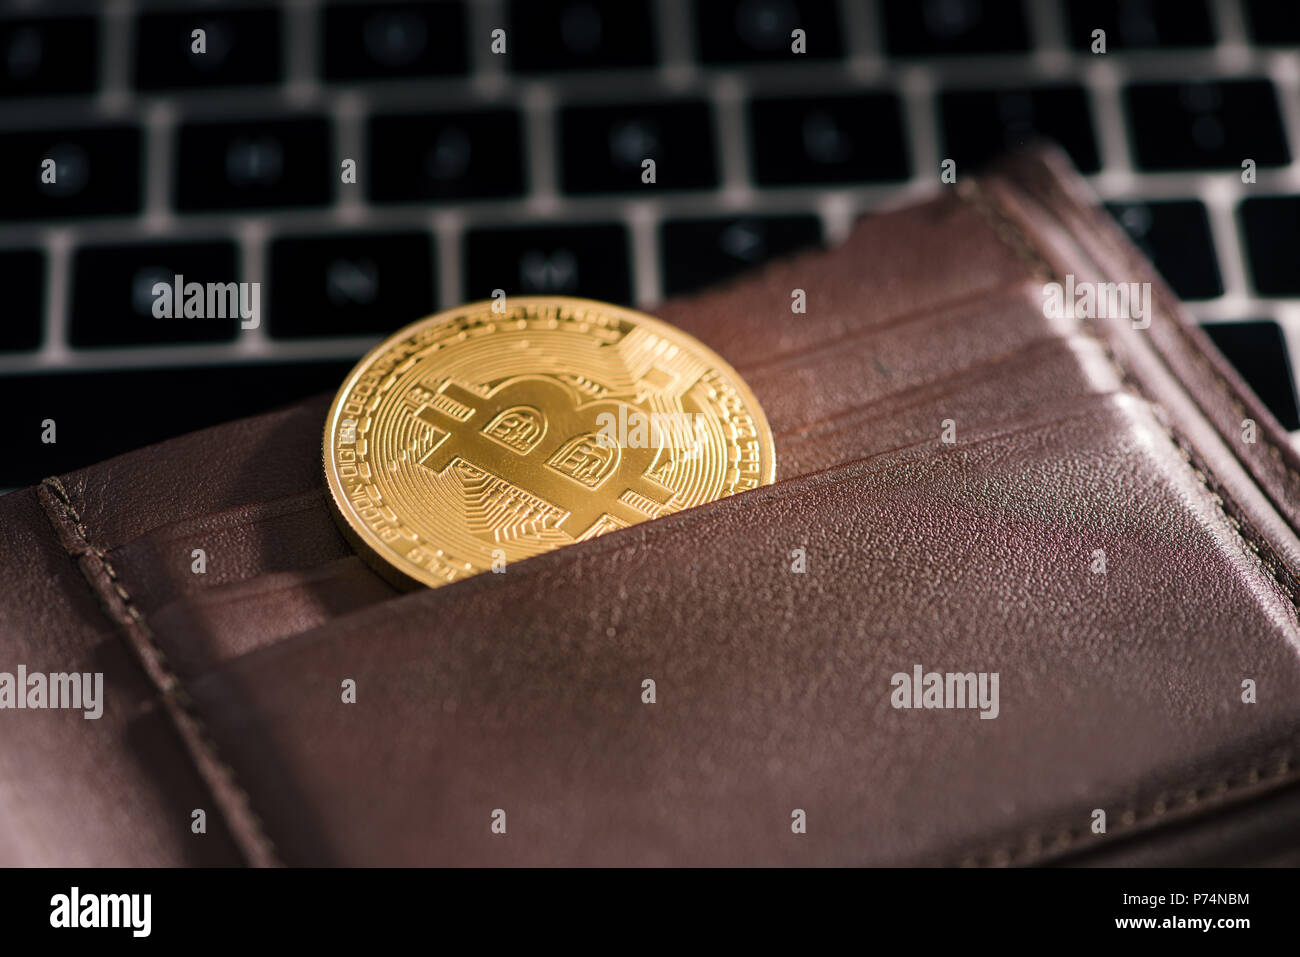 bronze crypto currency wallet